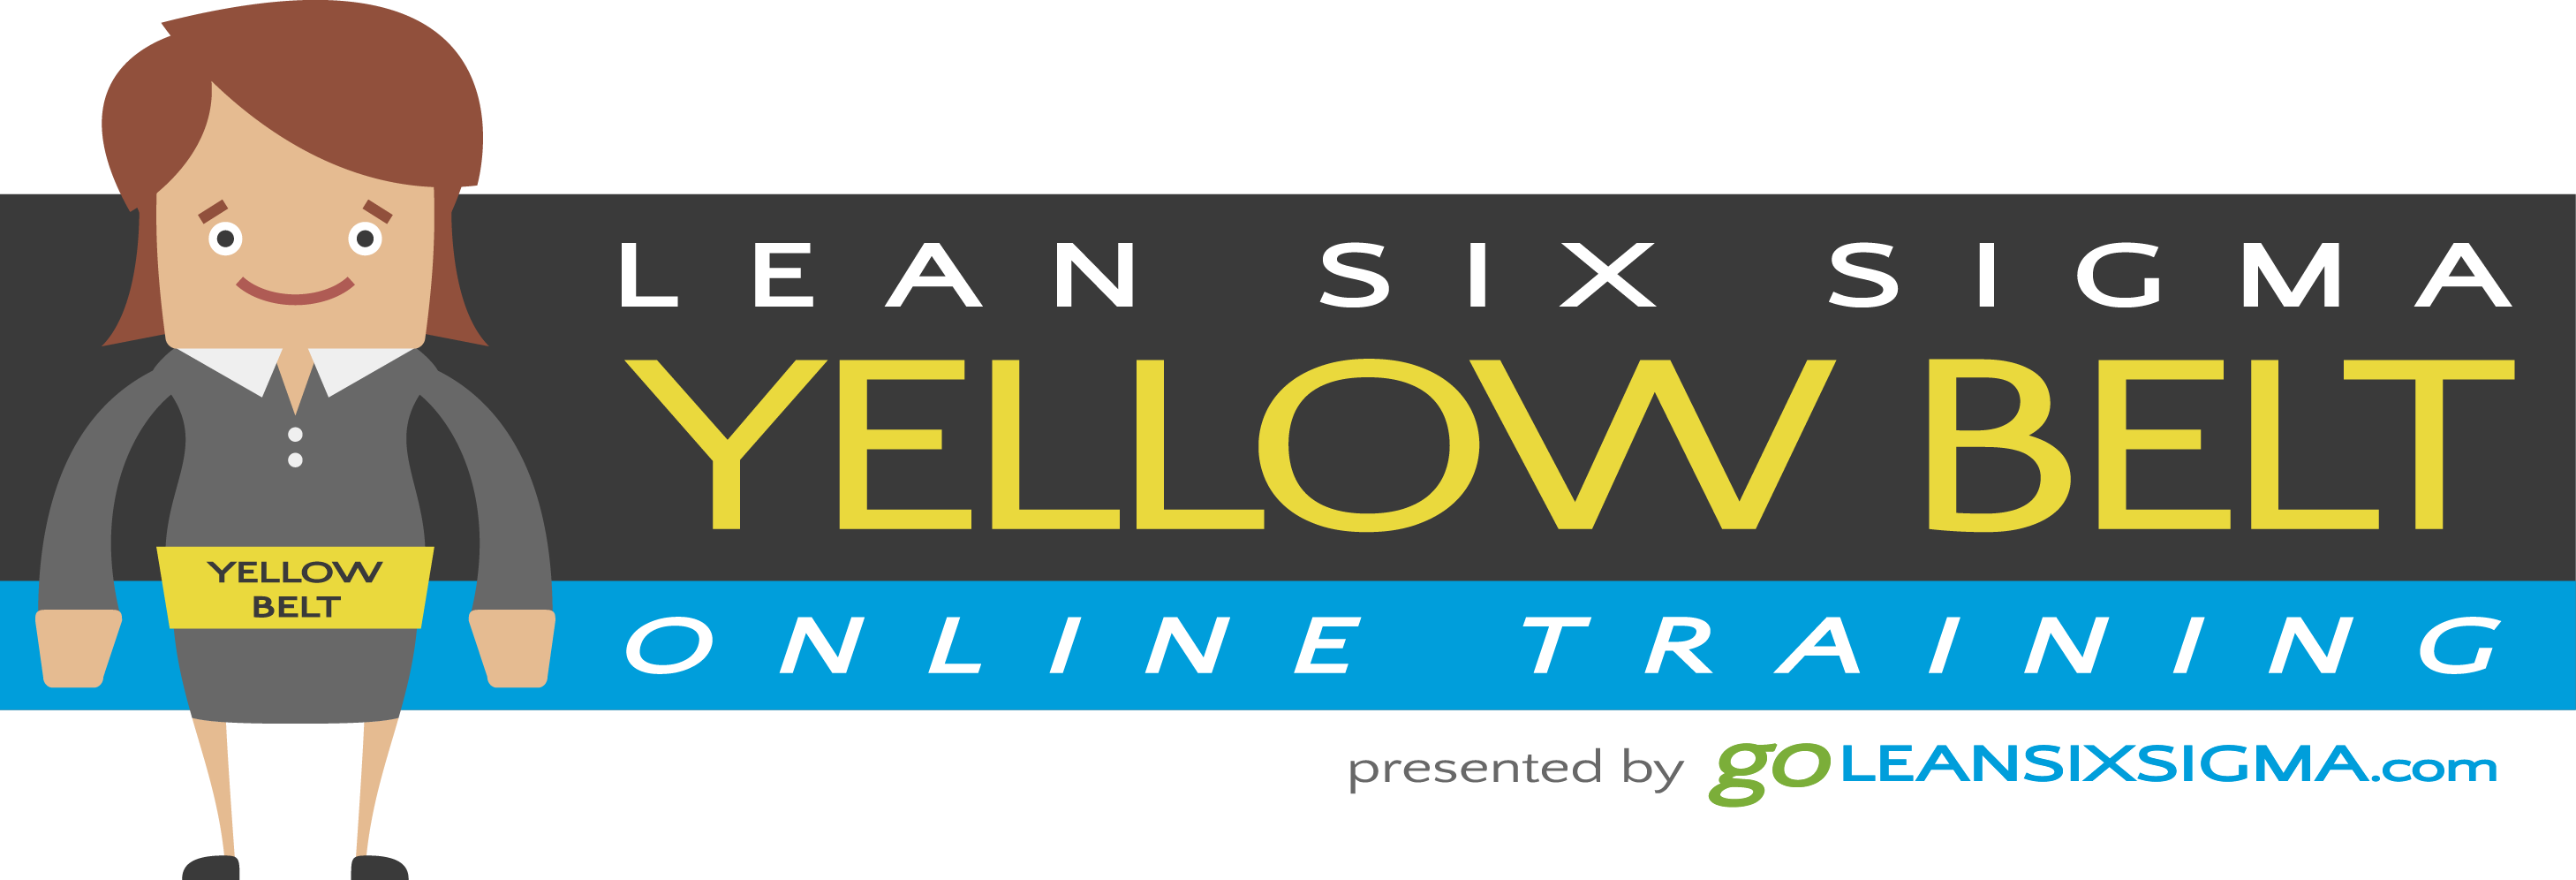 Free lean six sigma training yellow belt from goleansixsigma free lean six sigma training yellow belt from goleansixsigma xflitez Images